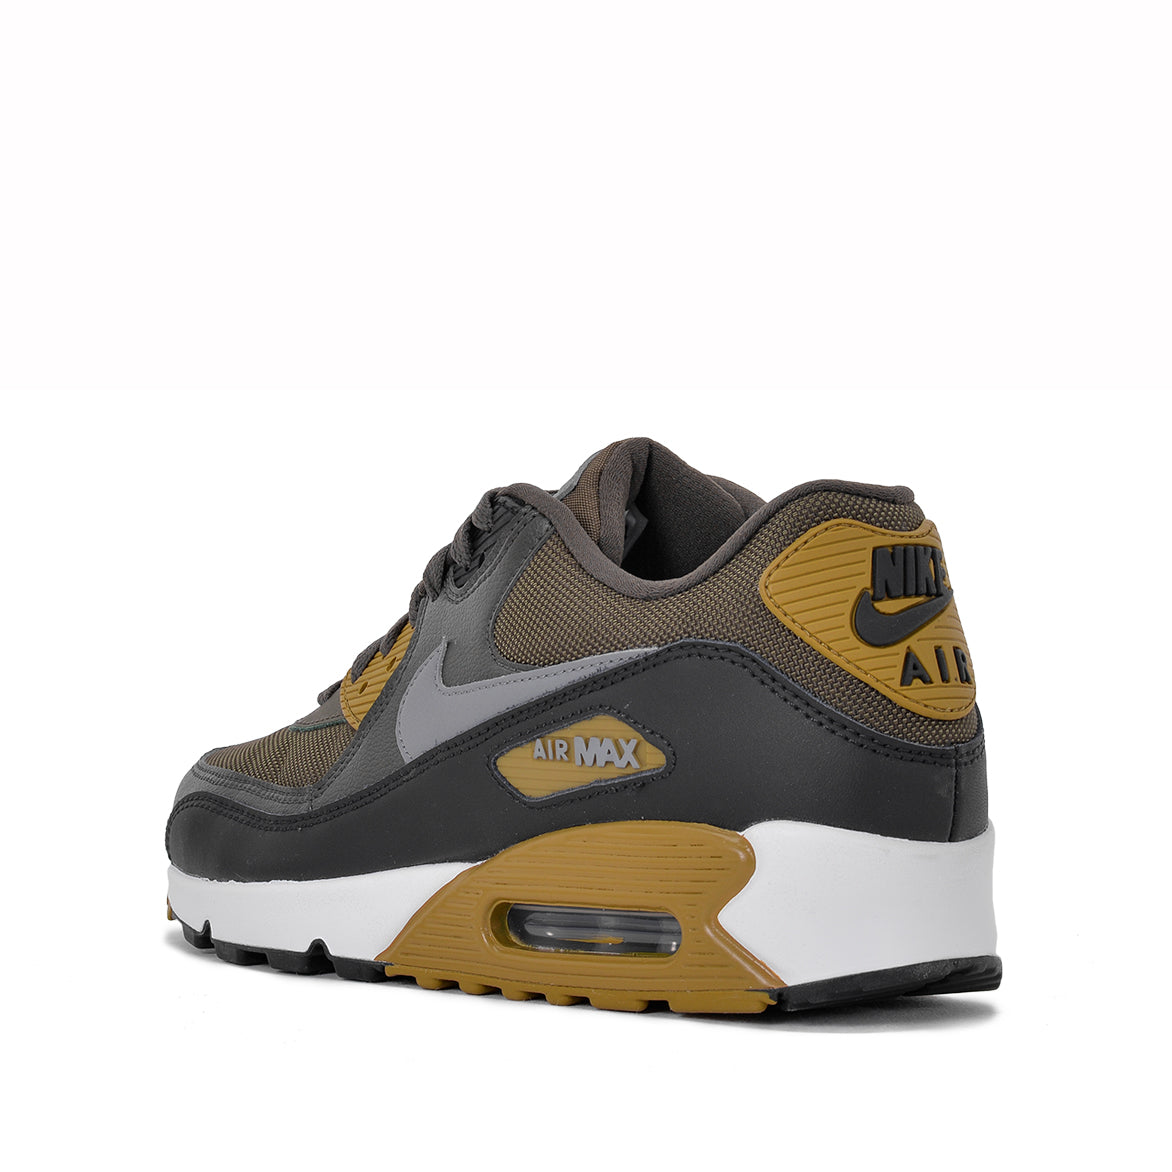 AIR MAX 90 ESSENTIAL - CARGO KHAKI / COOL GREY - BLACK